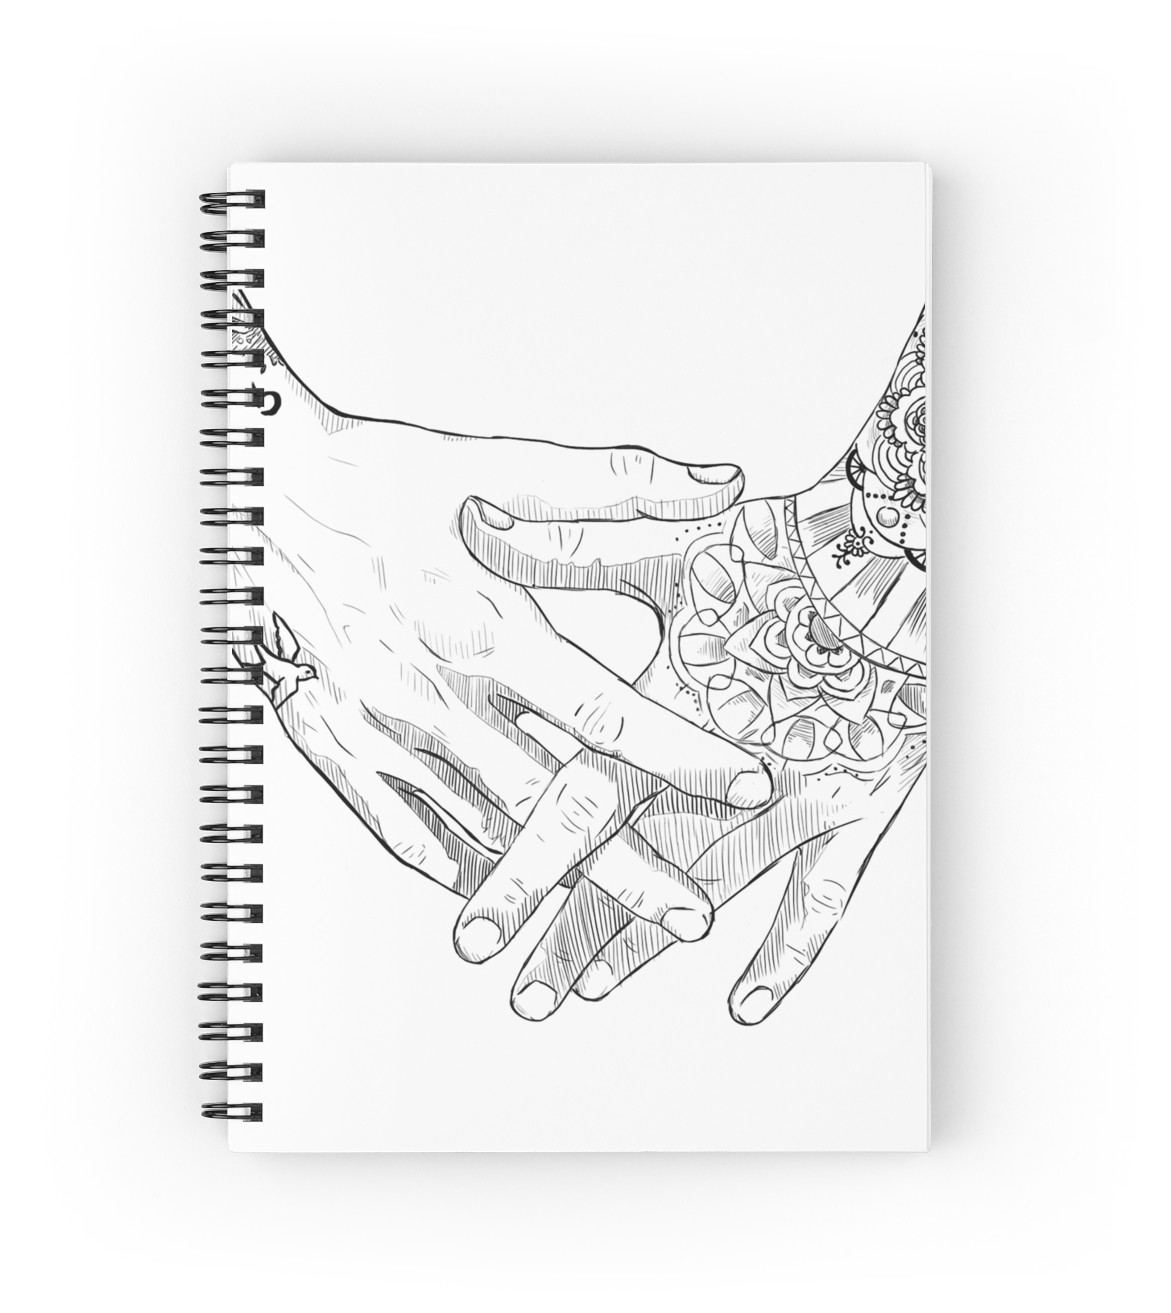 1171x1313 Zayn Malik's Hands Spiral Notebooks By Nyodo Redbubble